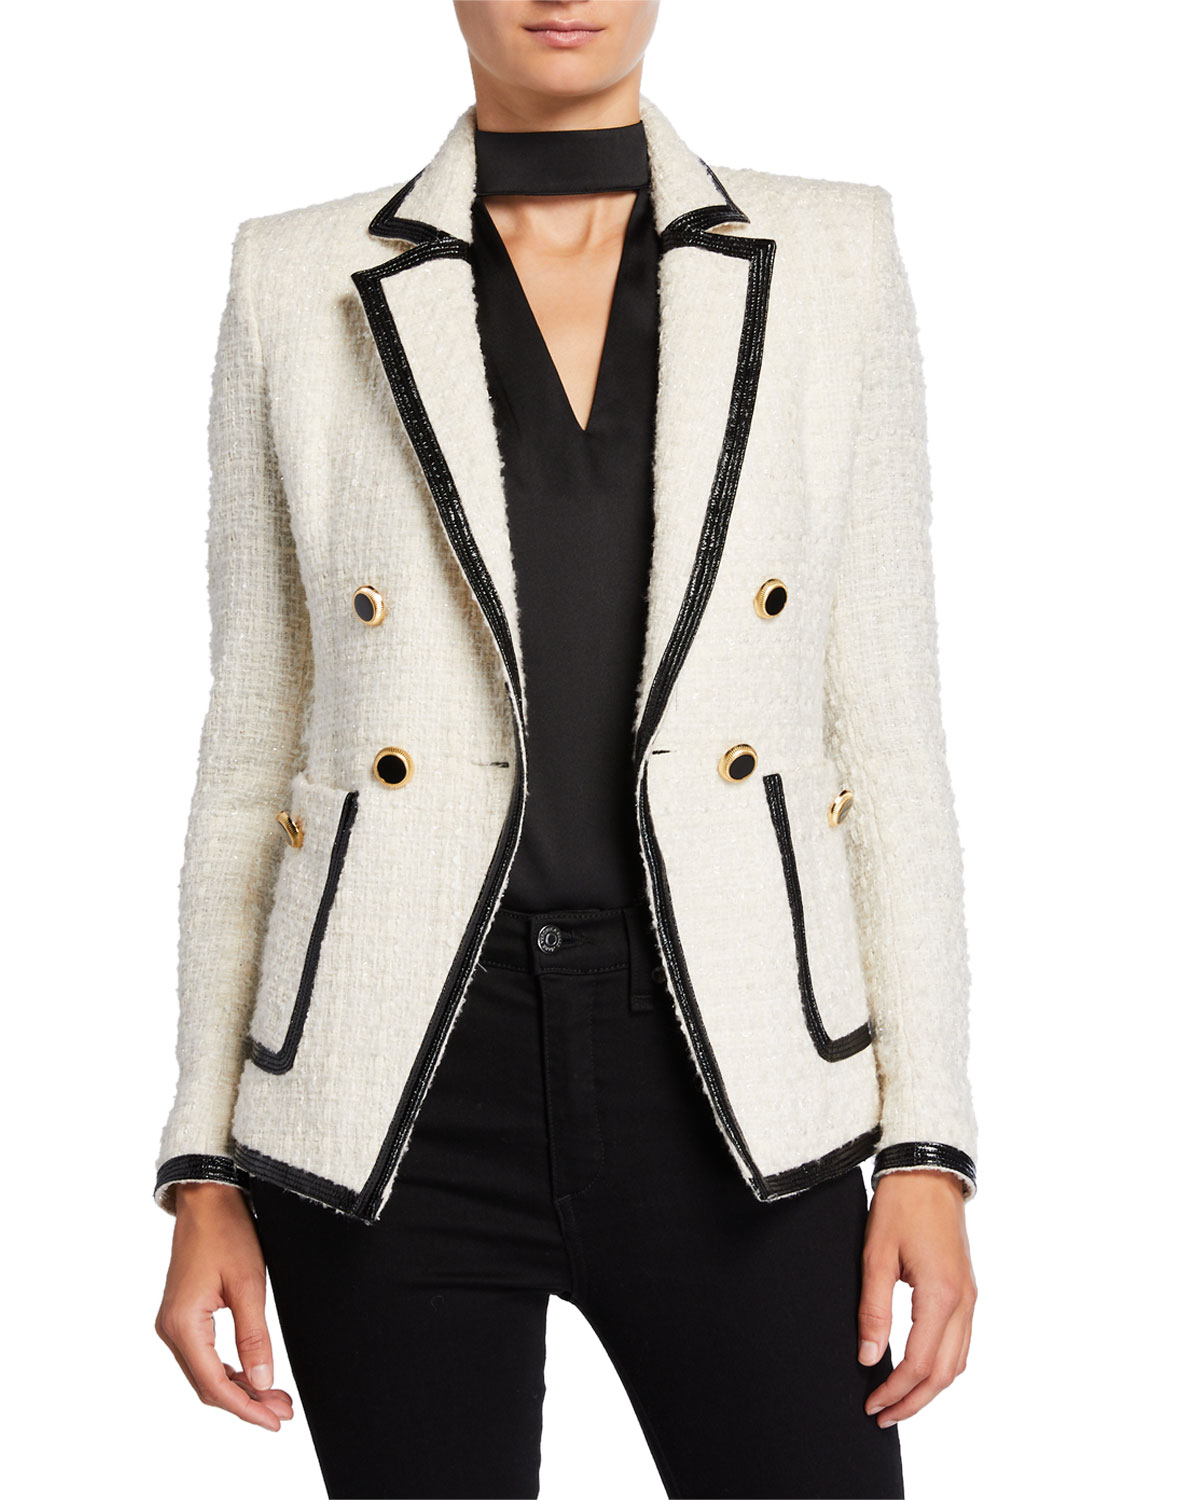 Veronica Beard Jackets CATO TWEED JACKET